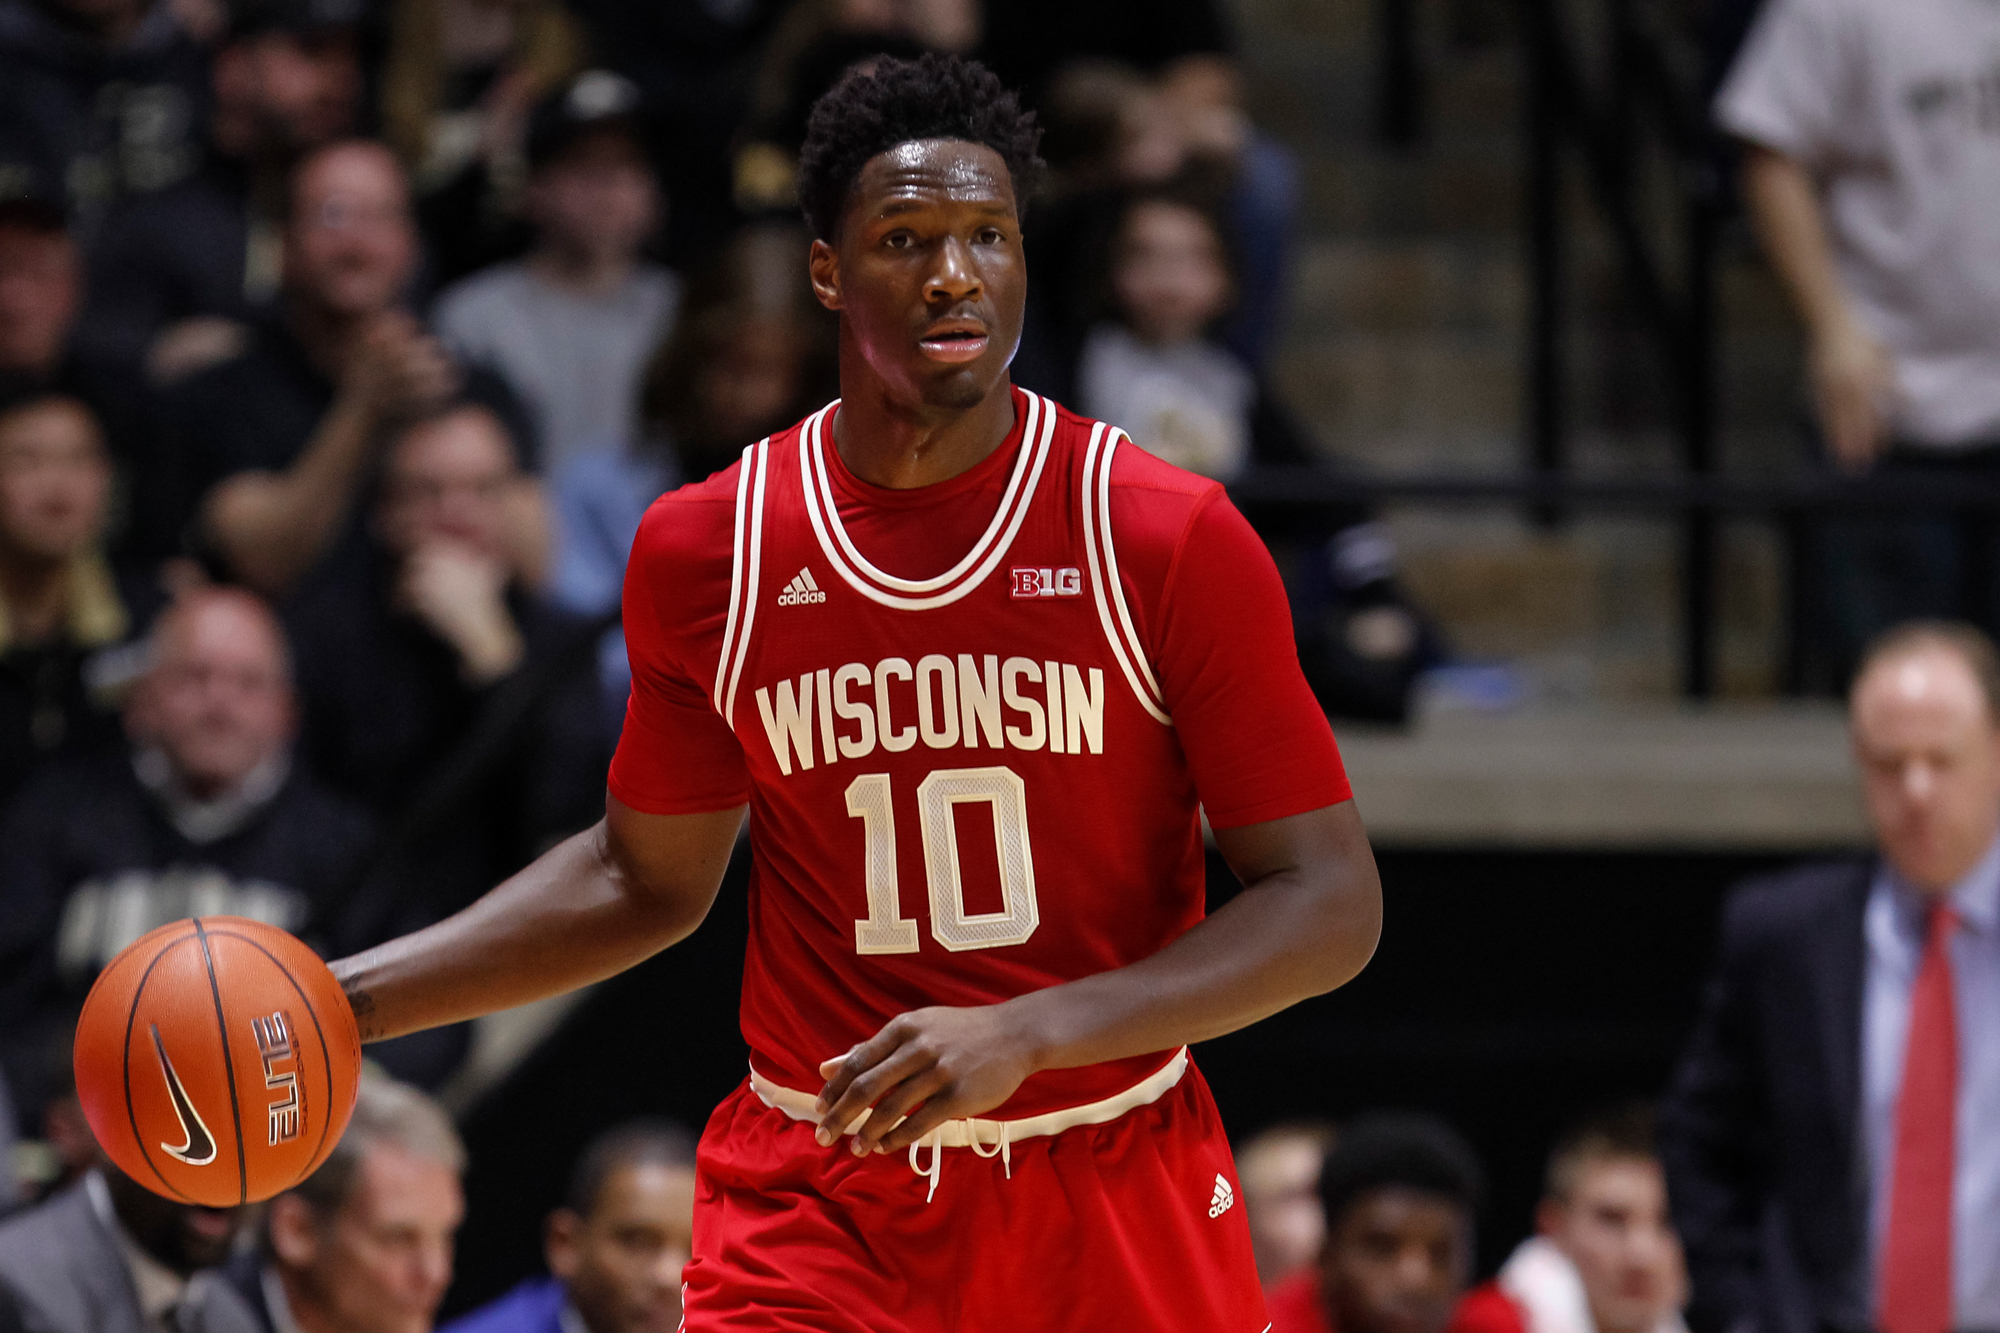 Nigel Hayes #10 of the Wisconsin Badgers brings the ball up court during the game against the Purdue Boilermakers at Mackey Arena on March 6, 2016 in West Lafayette, Indiana.